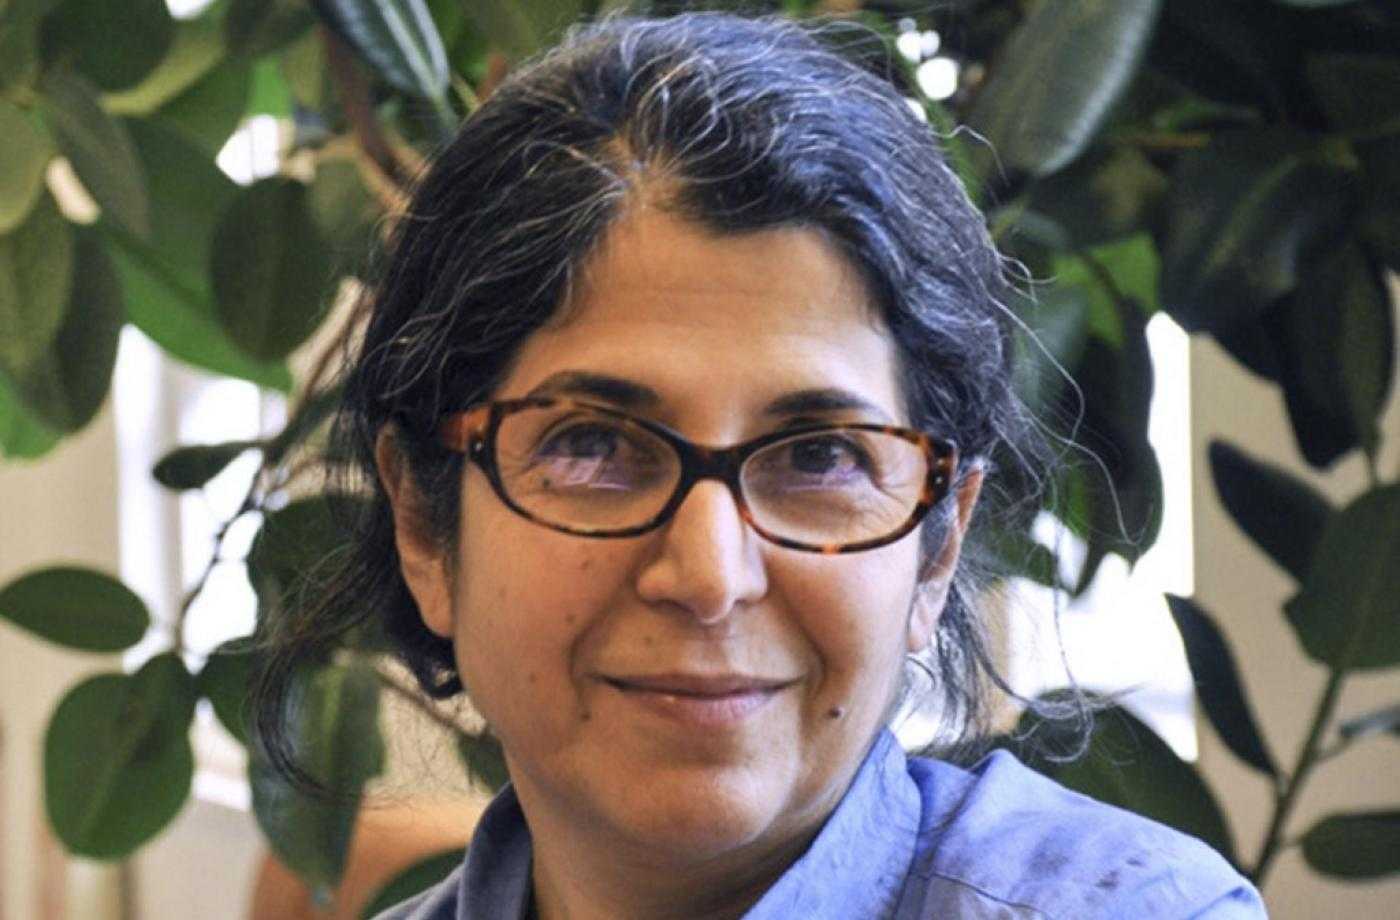 Iran sentences French academic Fariba Adelkhah to 6 years jail